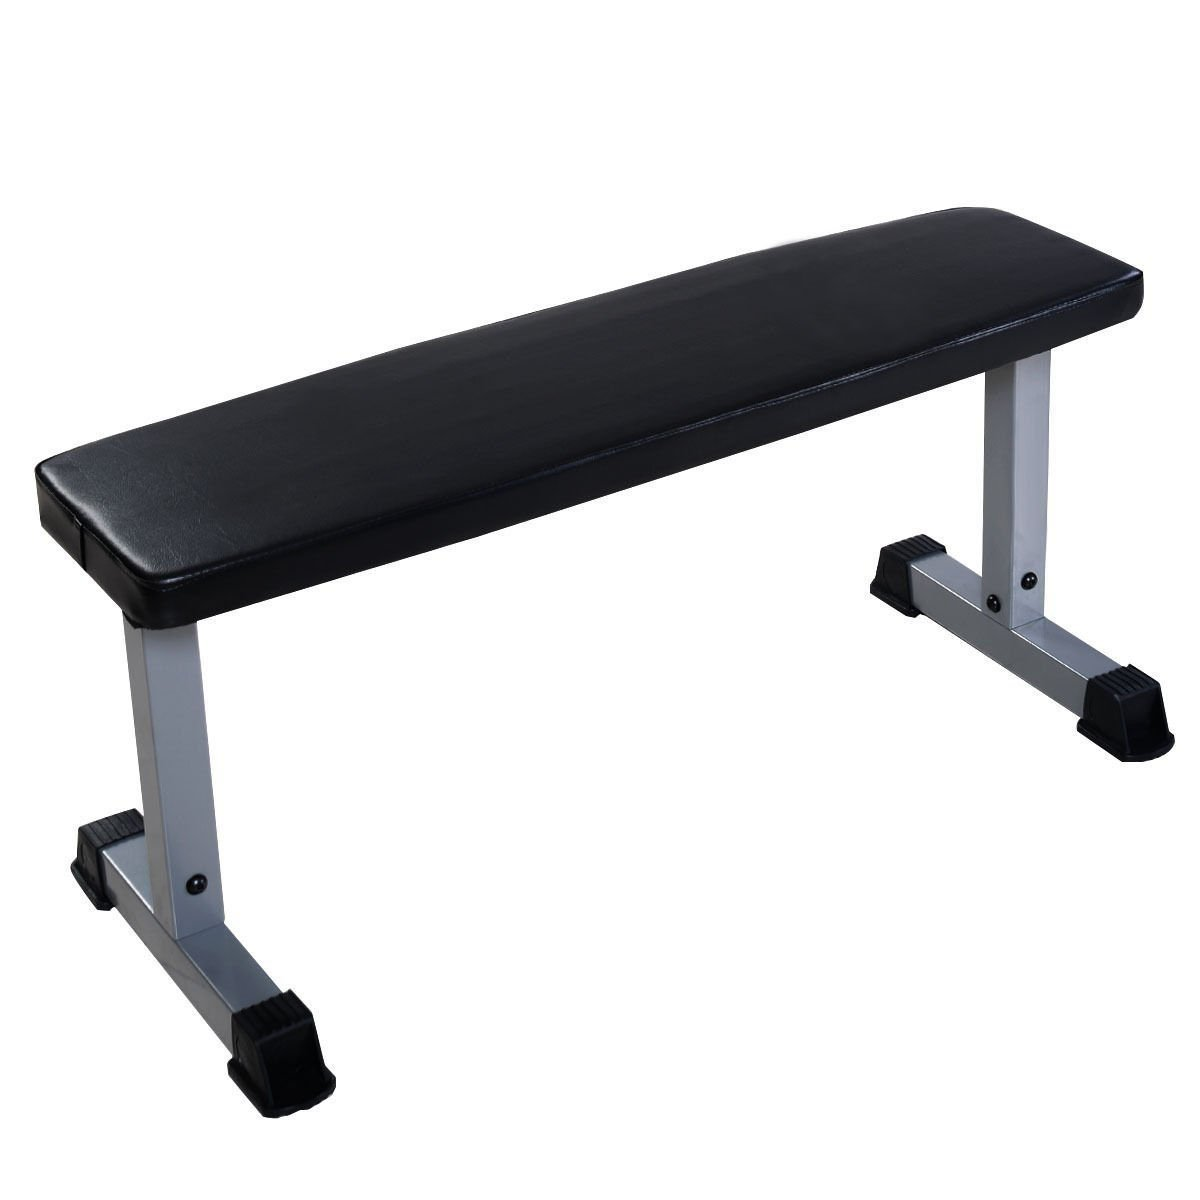 Sportstorm Strength Multi-Purpose Utility Flat Bench Max Weight Capacity 440LBs (SP34822) by Sportstorm